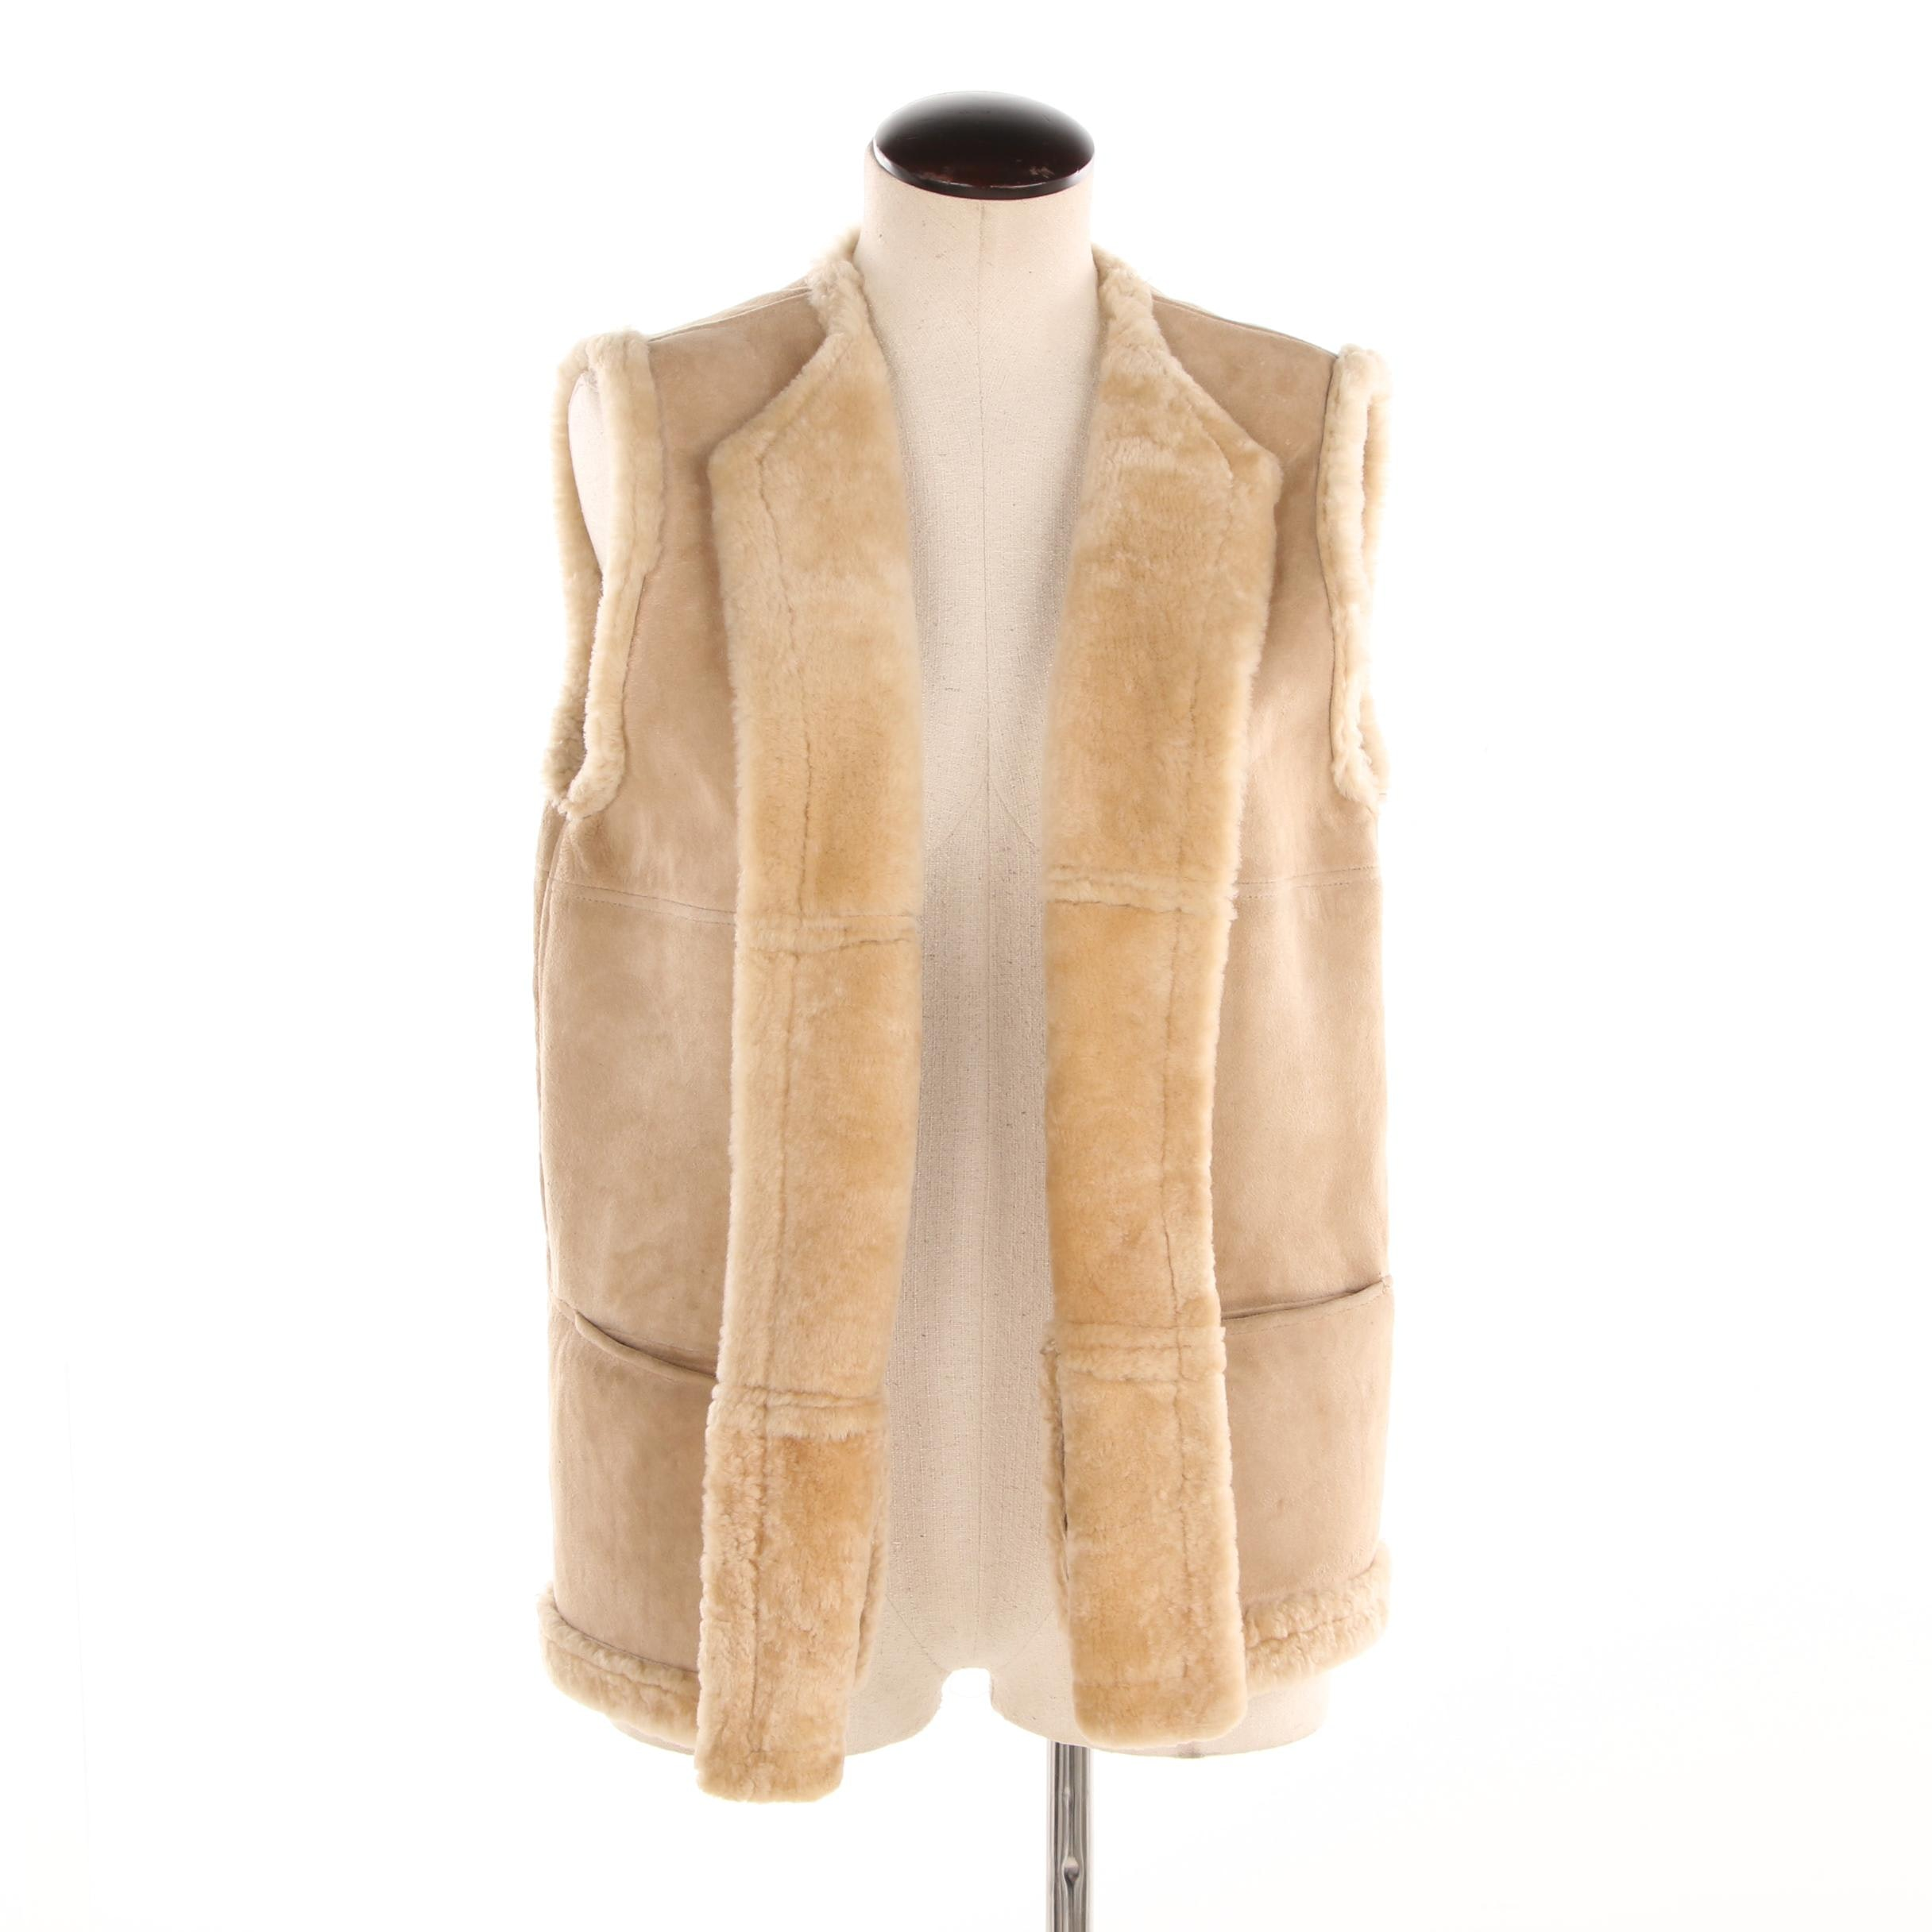 Women's Beige Suede and Shearling Vest, Made in Italy